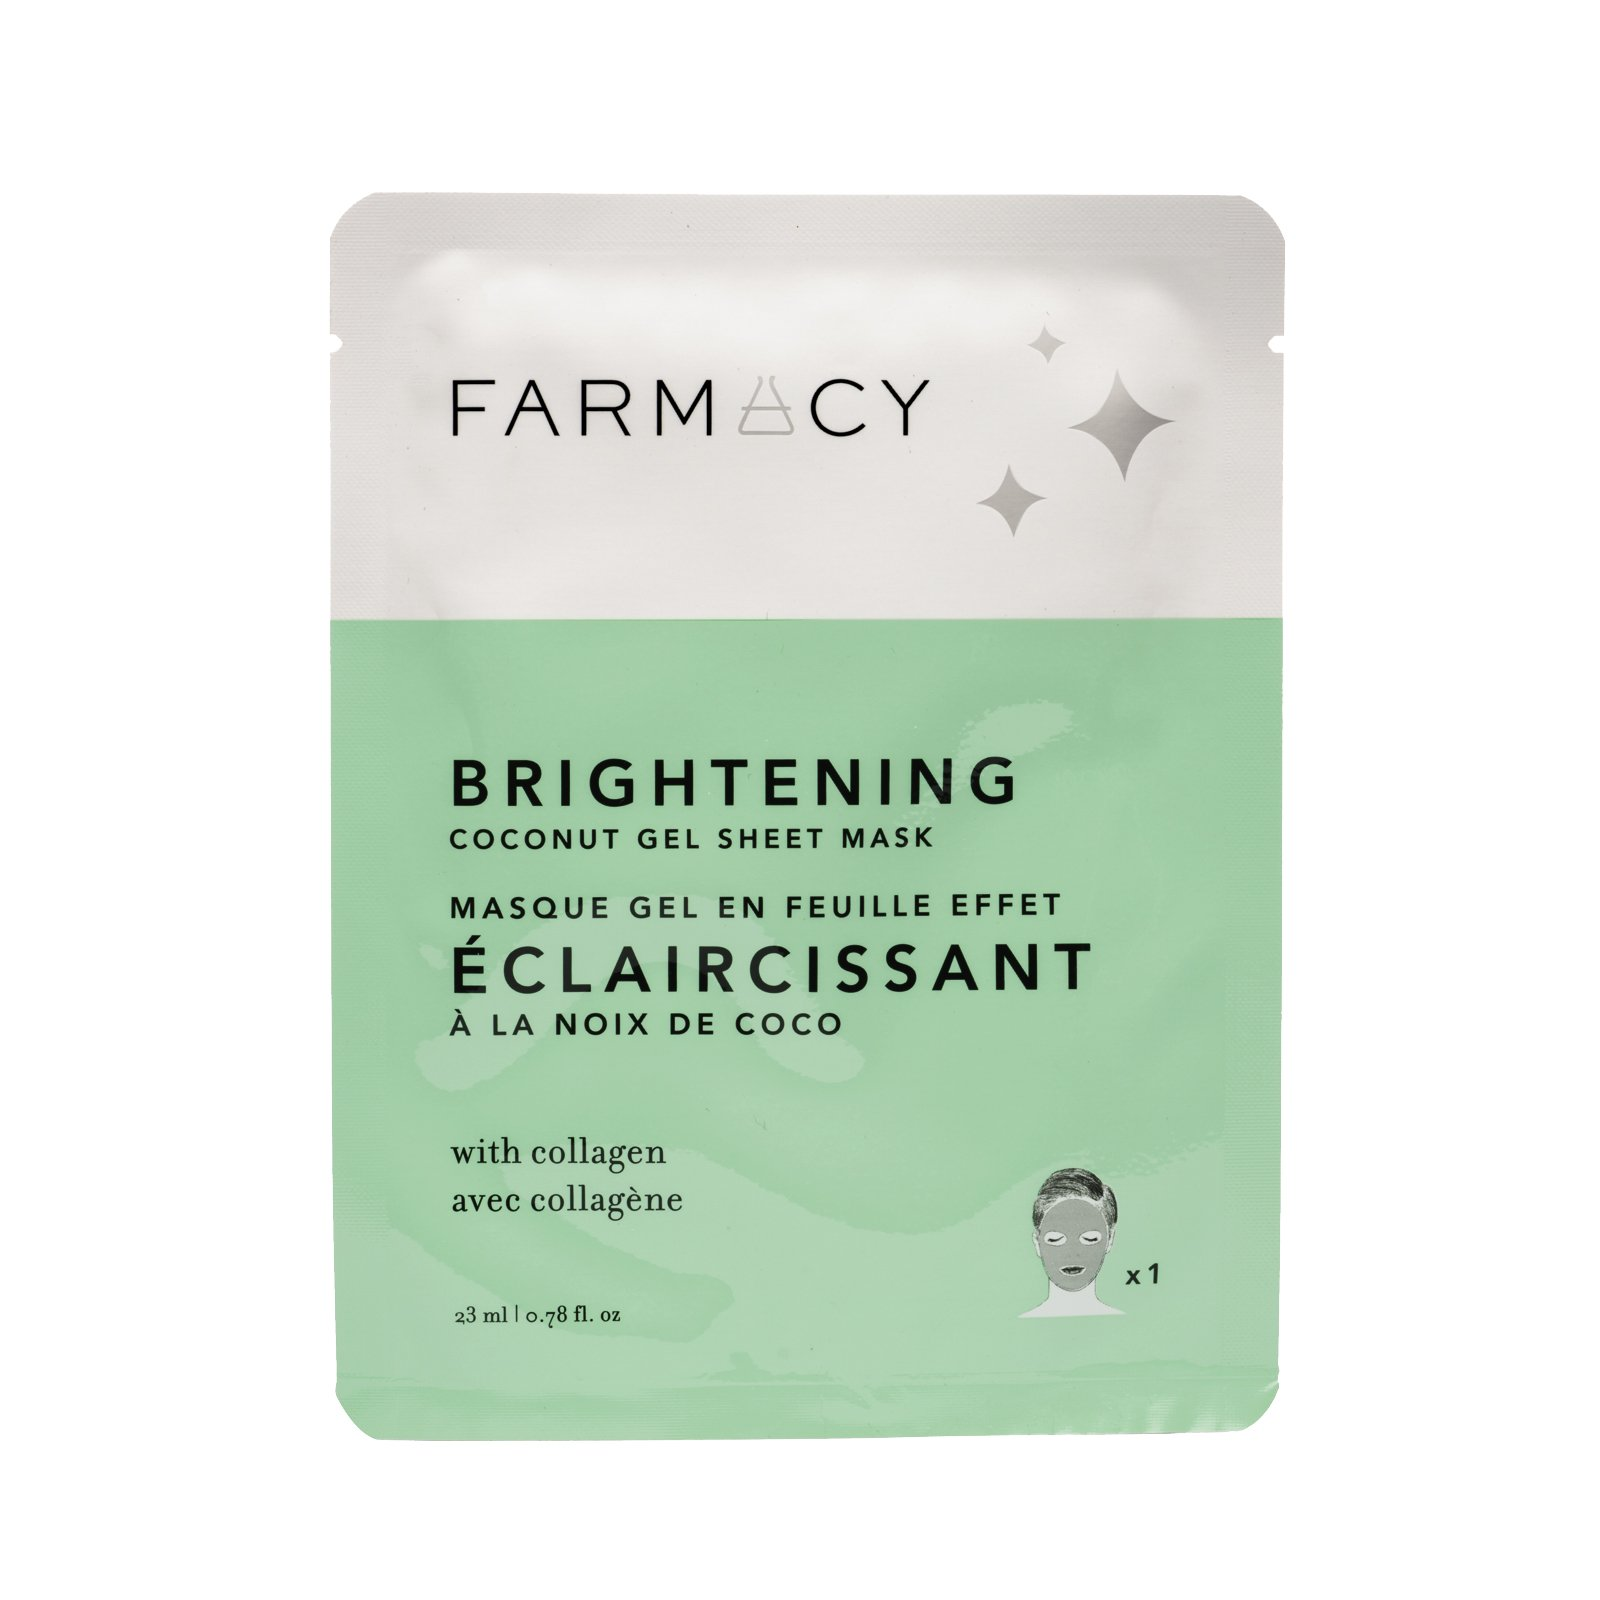 FARMACY BRIGHTENING COCONUT GEL SHEET MASK